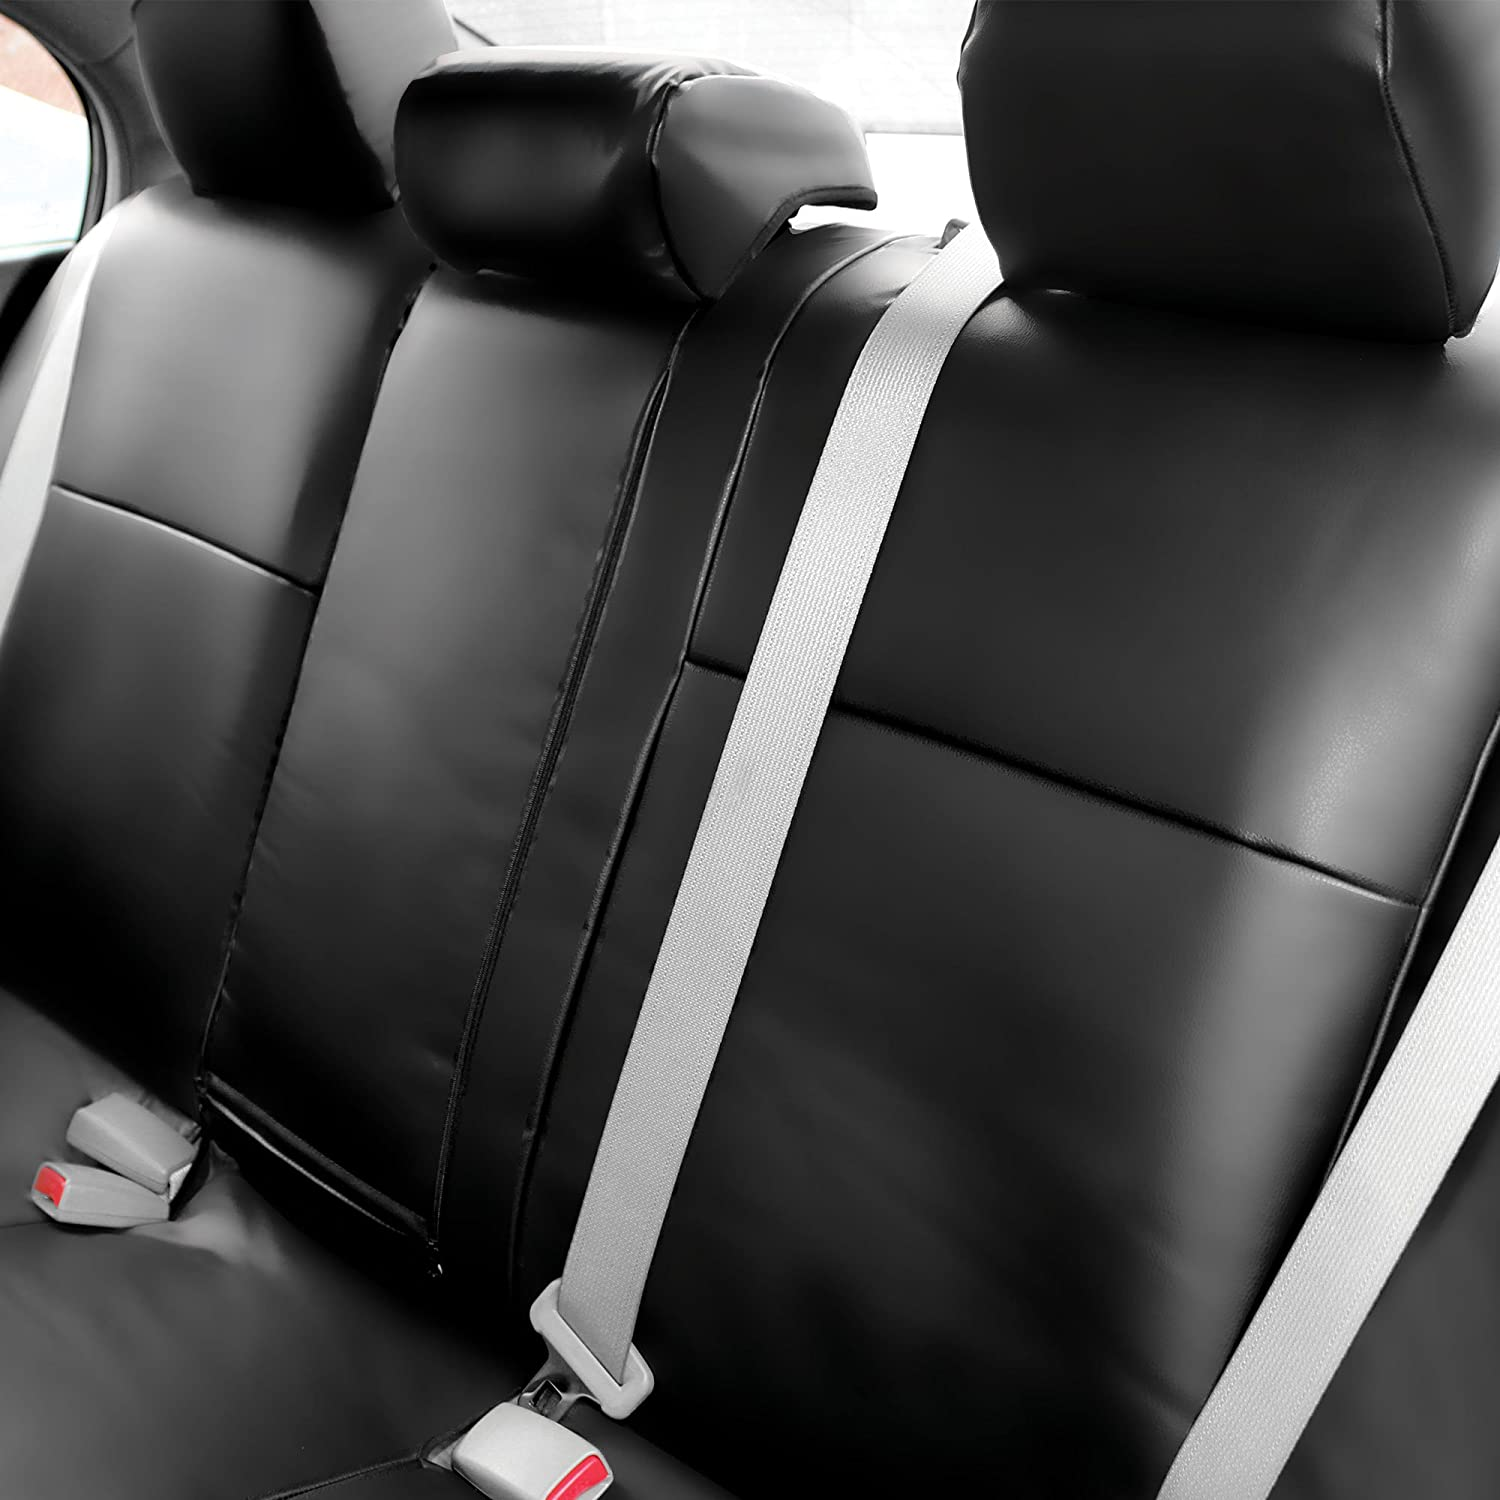 Black Leather Look Car Seat Covers Cover For Honda Civic Hatchback 2012-2017